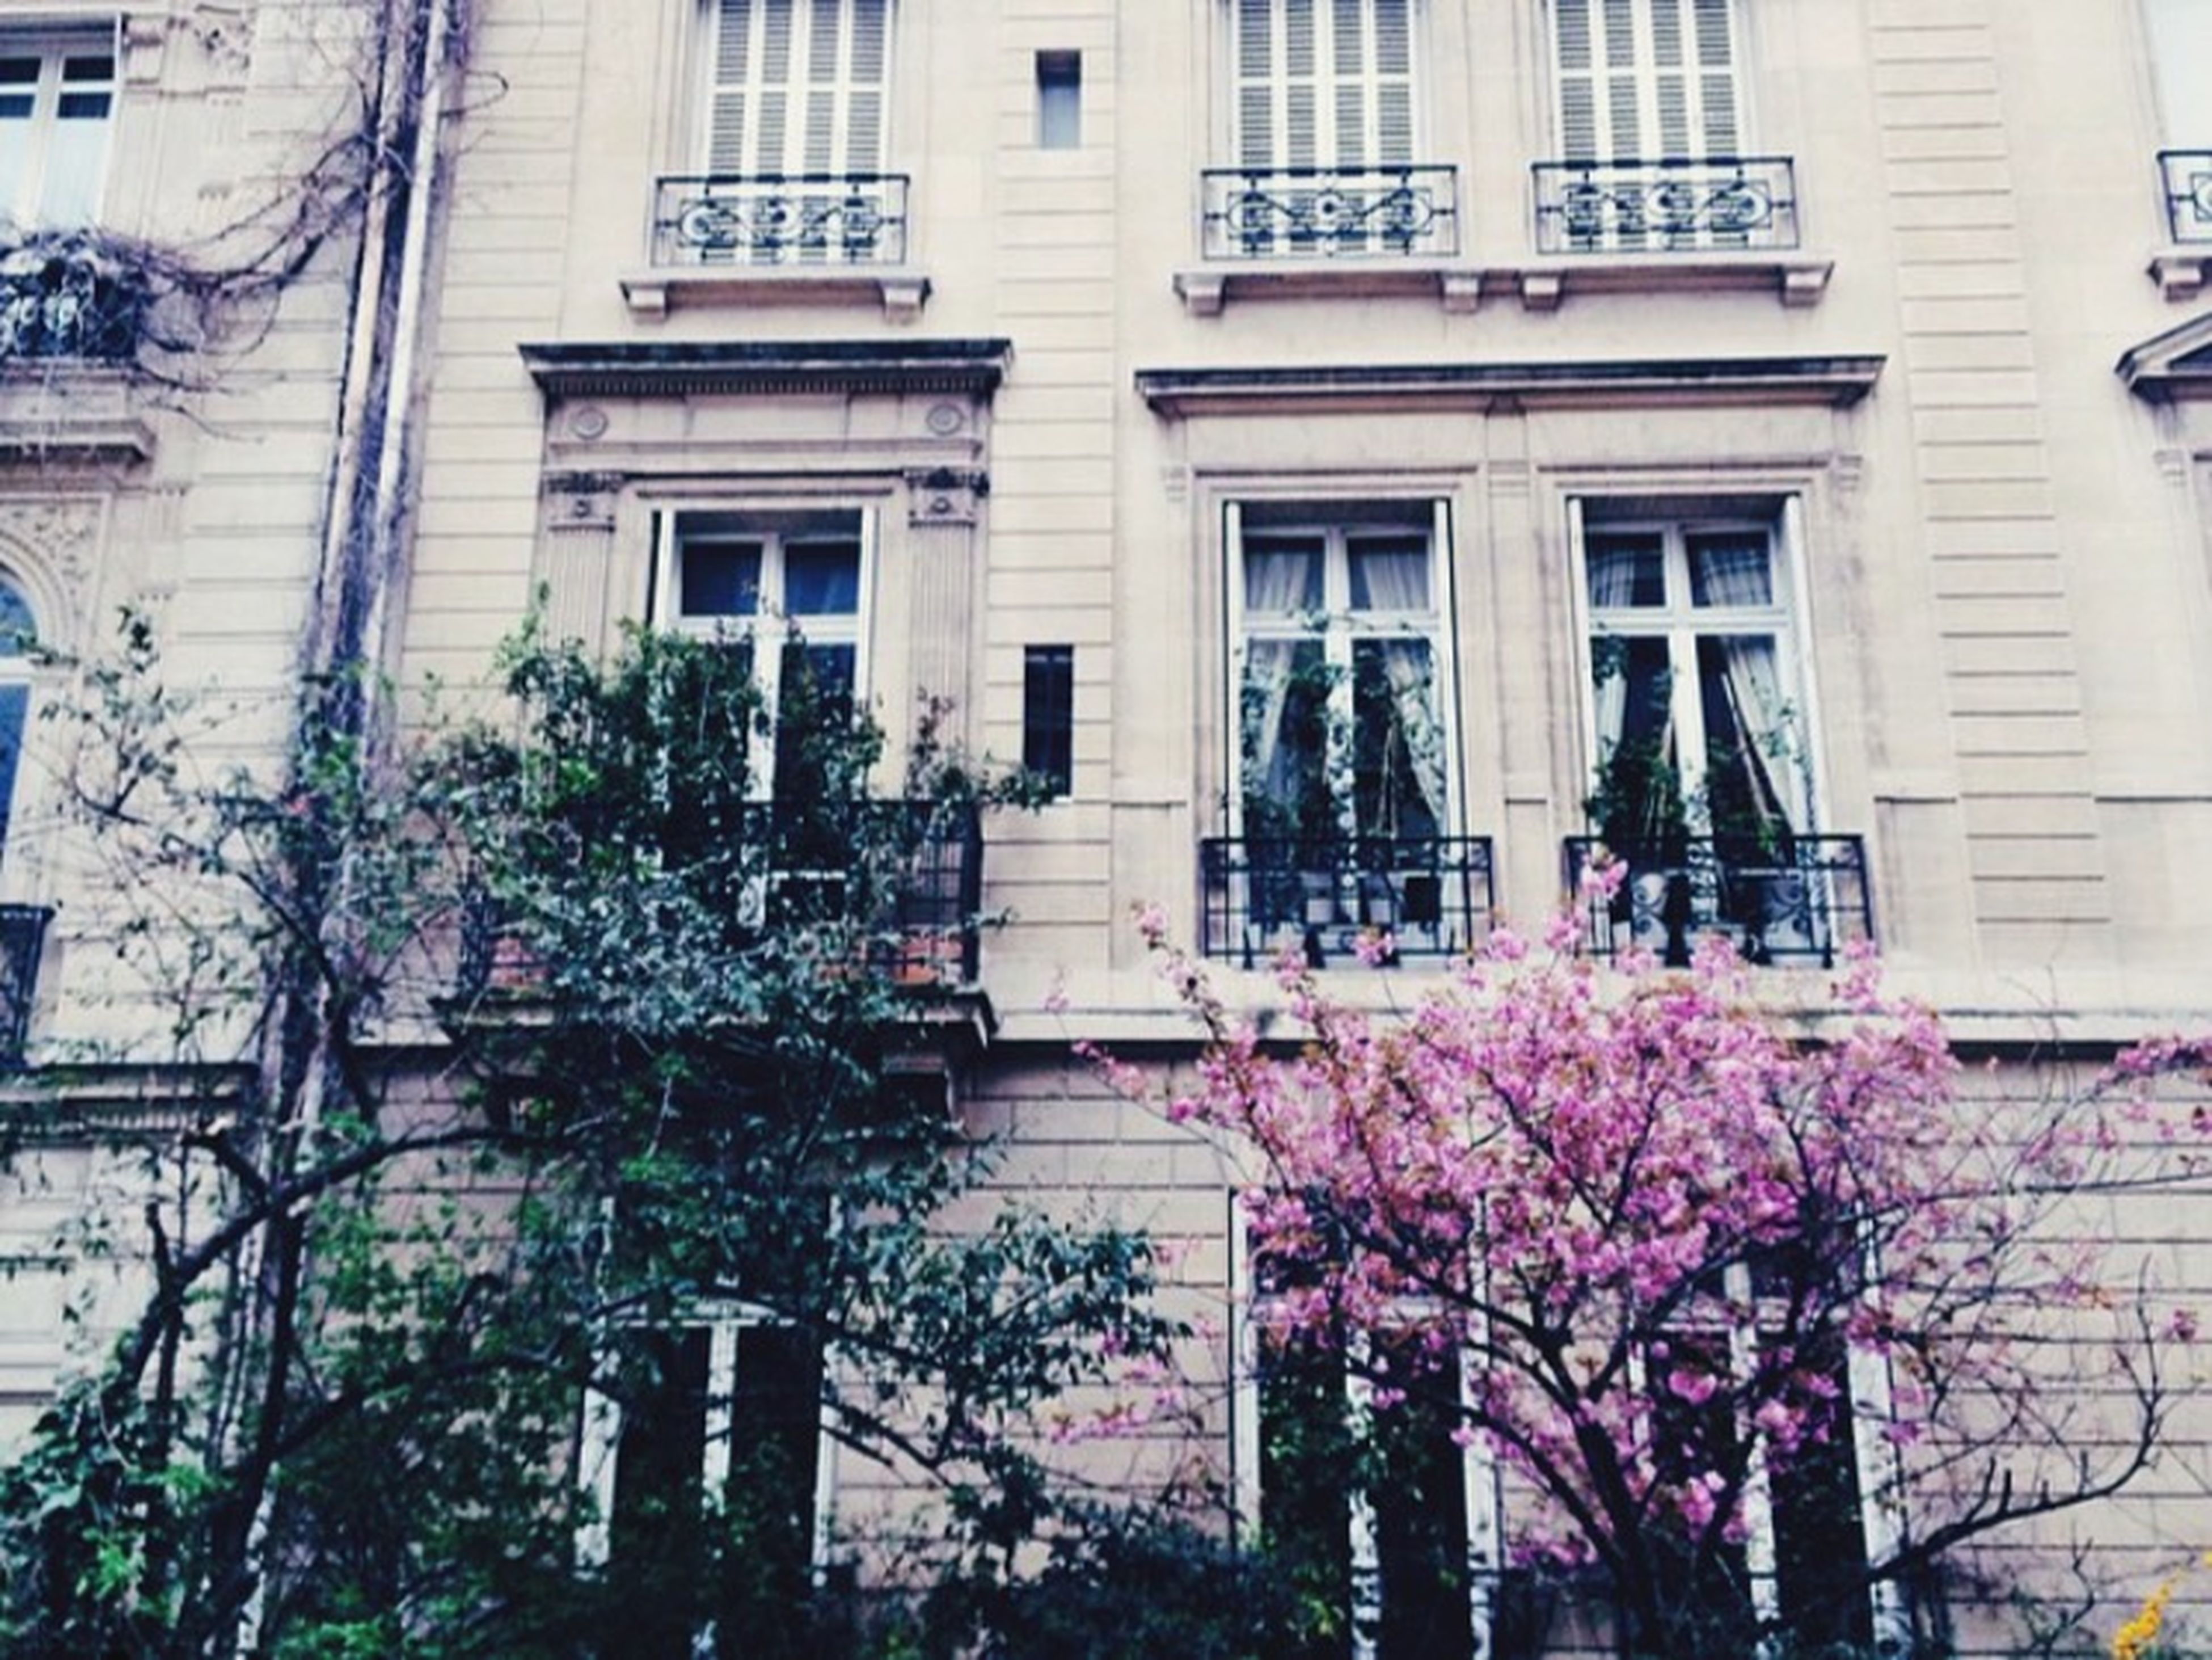 building exterior, architecture, built structure, window, flower, building, residential building, growth, tree, low angle view, residential structure, city, balcony, house, plant, day, branch, outdoors, potted plant, no people